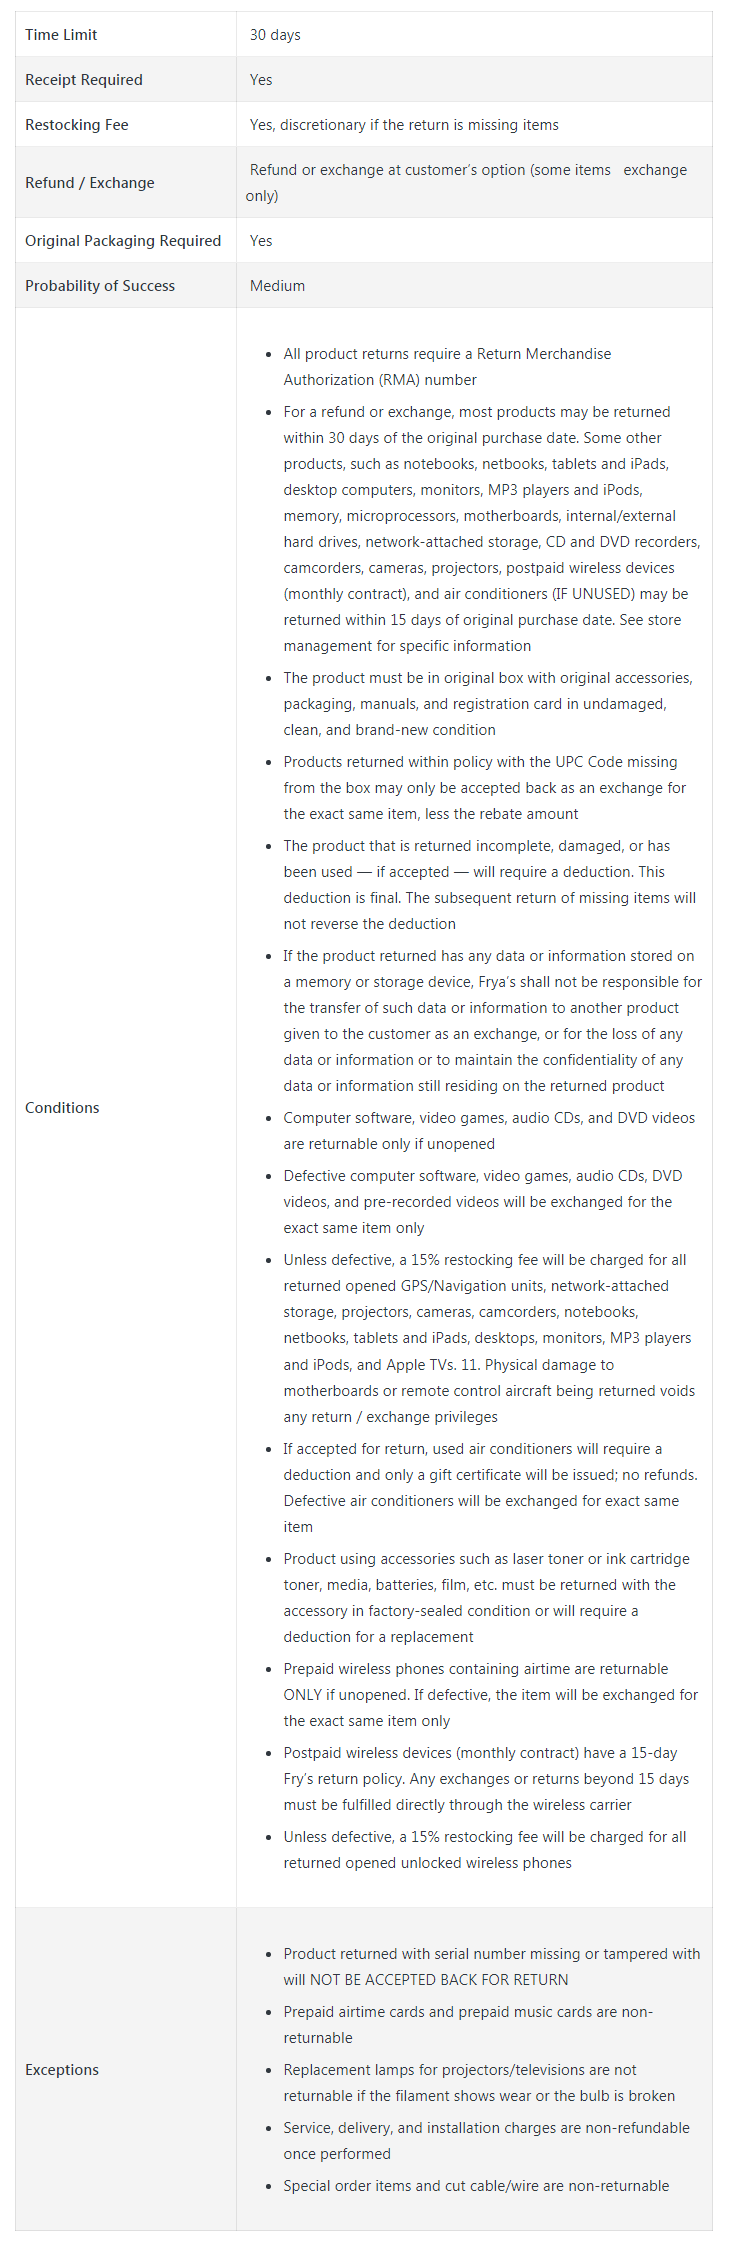 frys return policy (quick note)